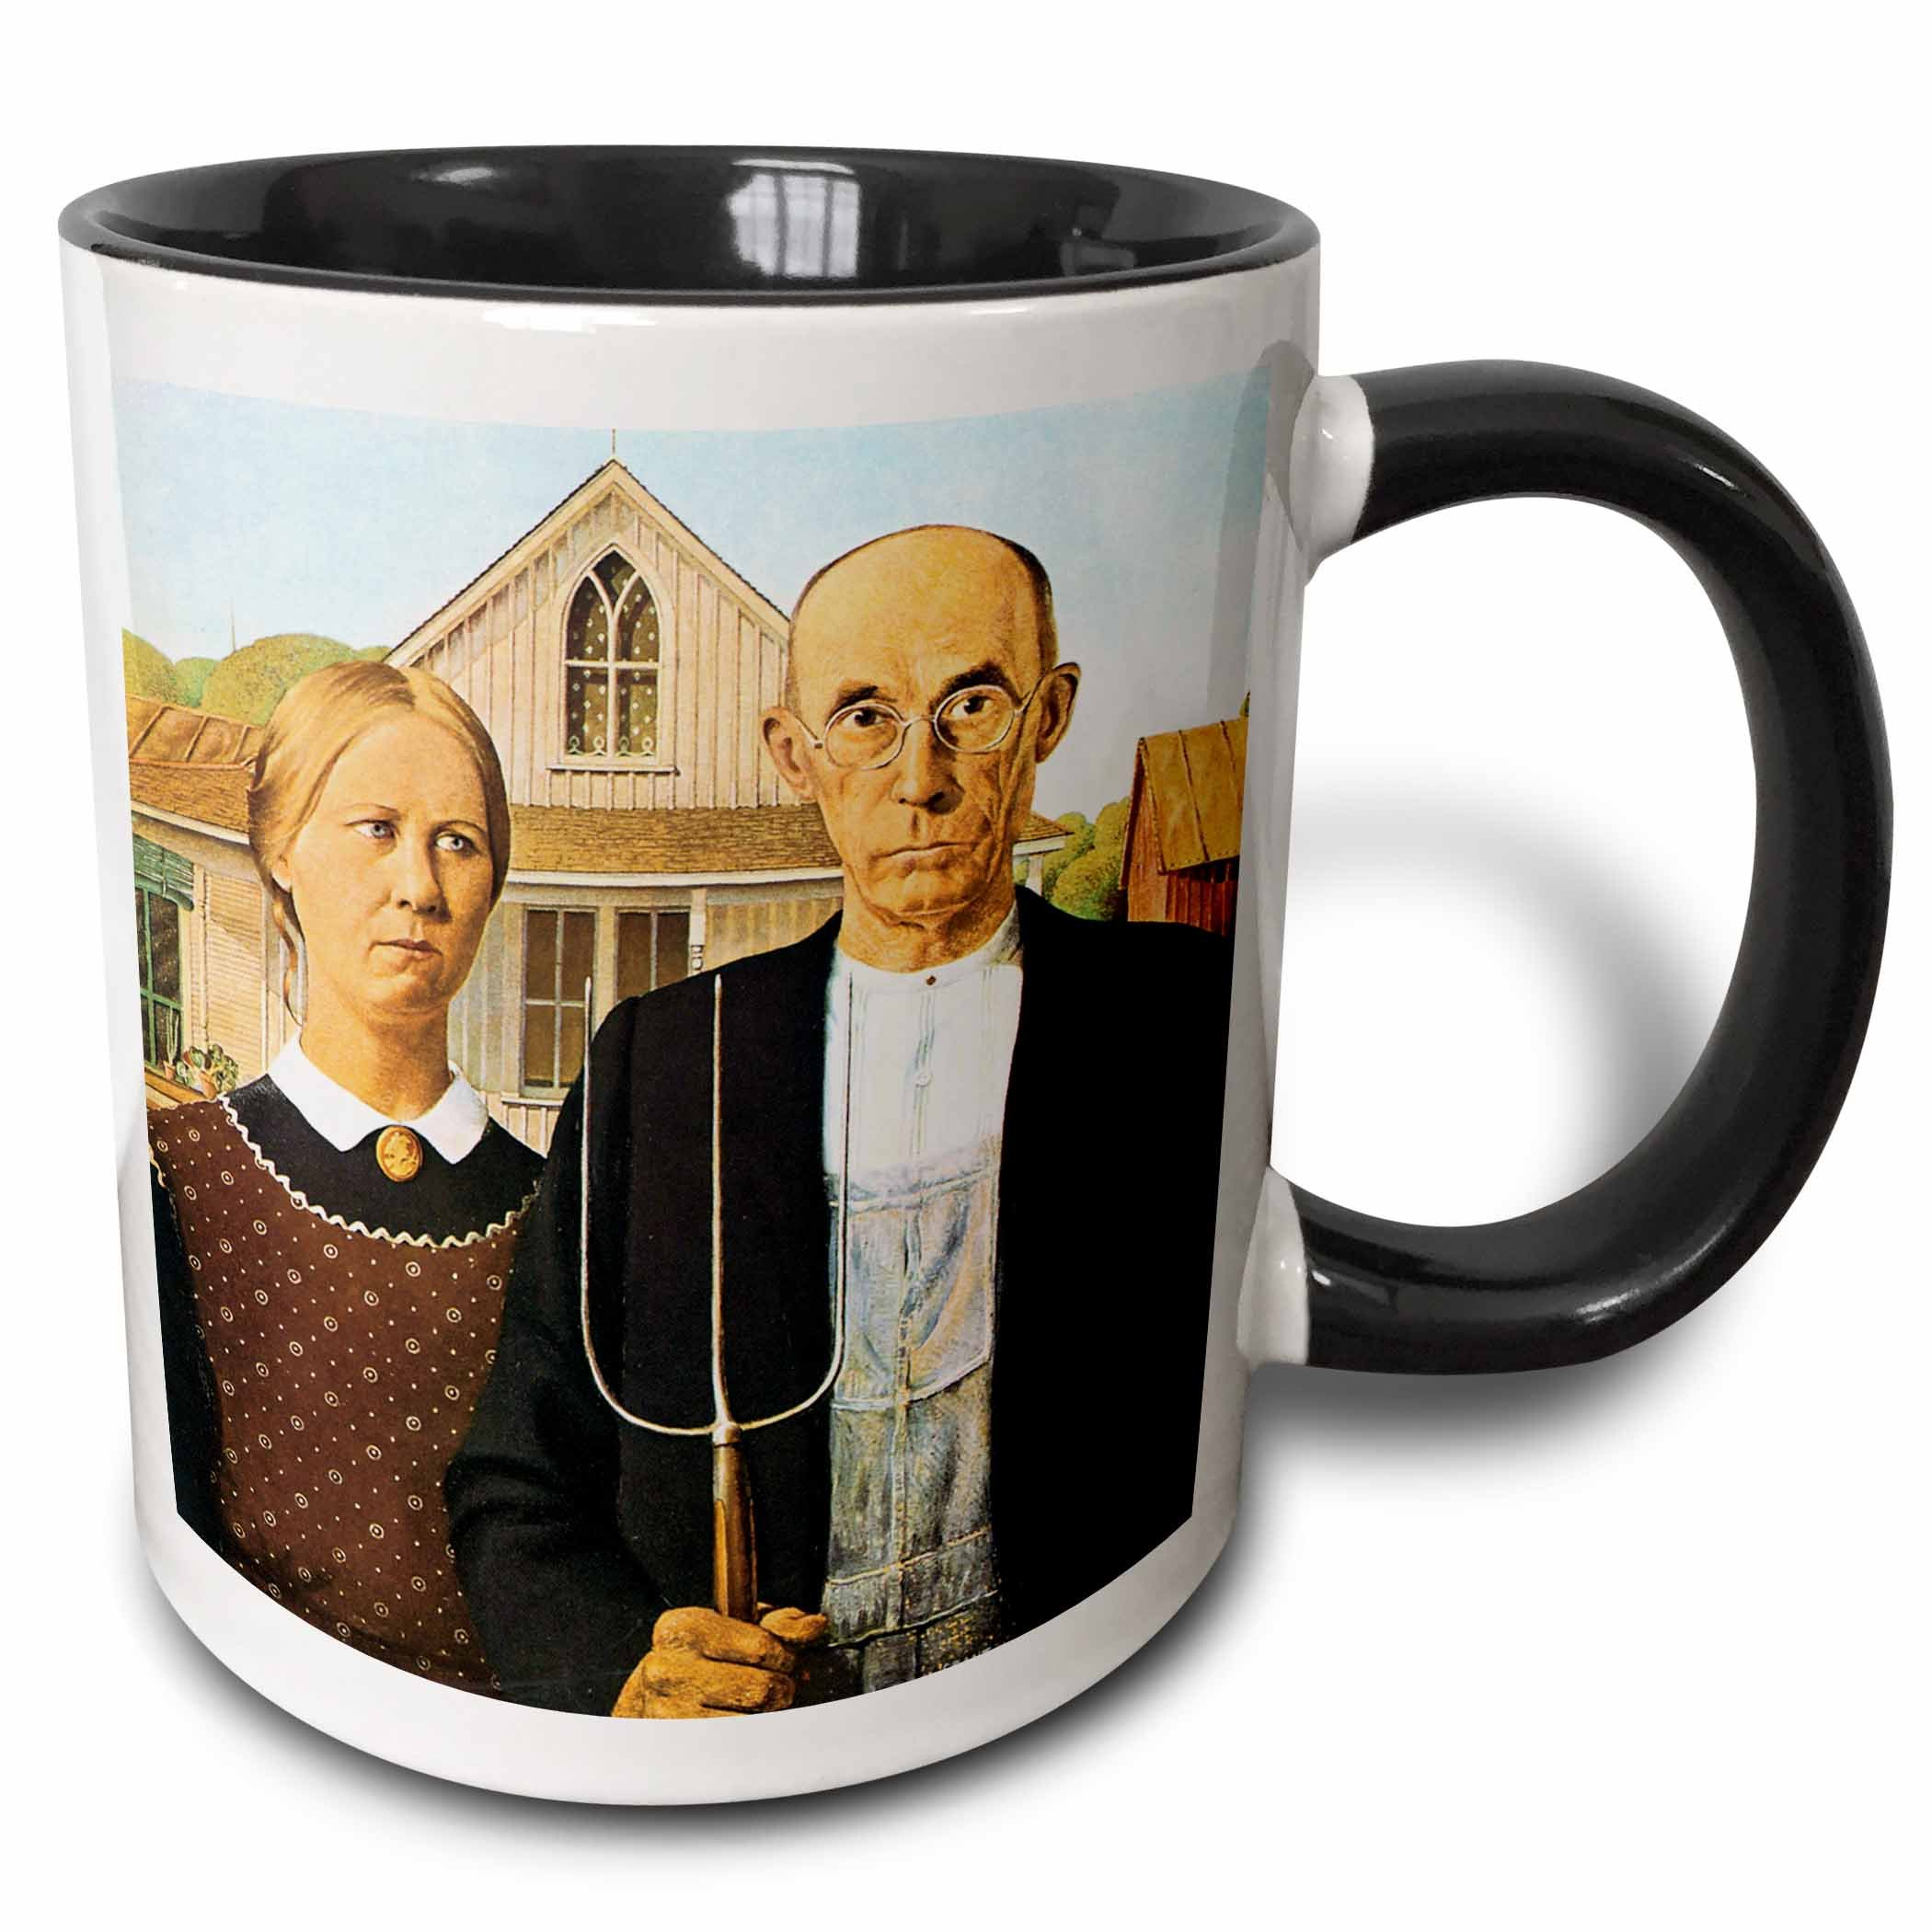 3dRose American Gothic by Grant Wood Mug, Black, 11 oz